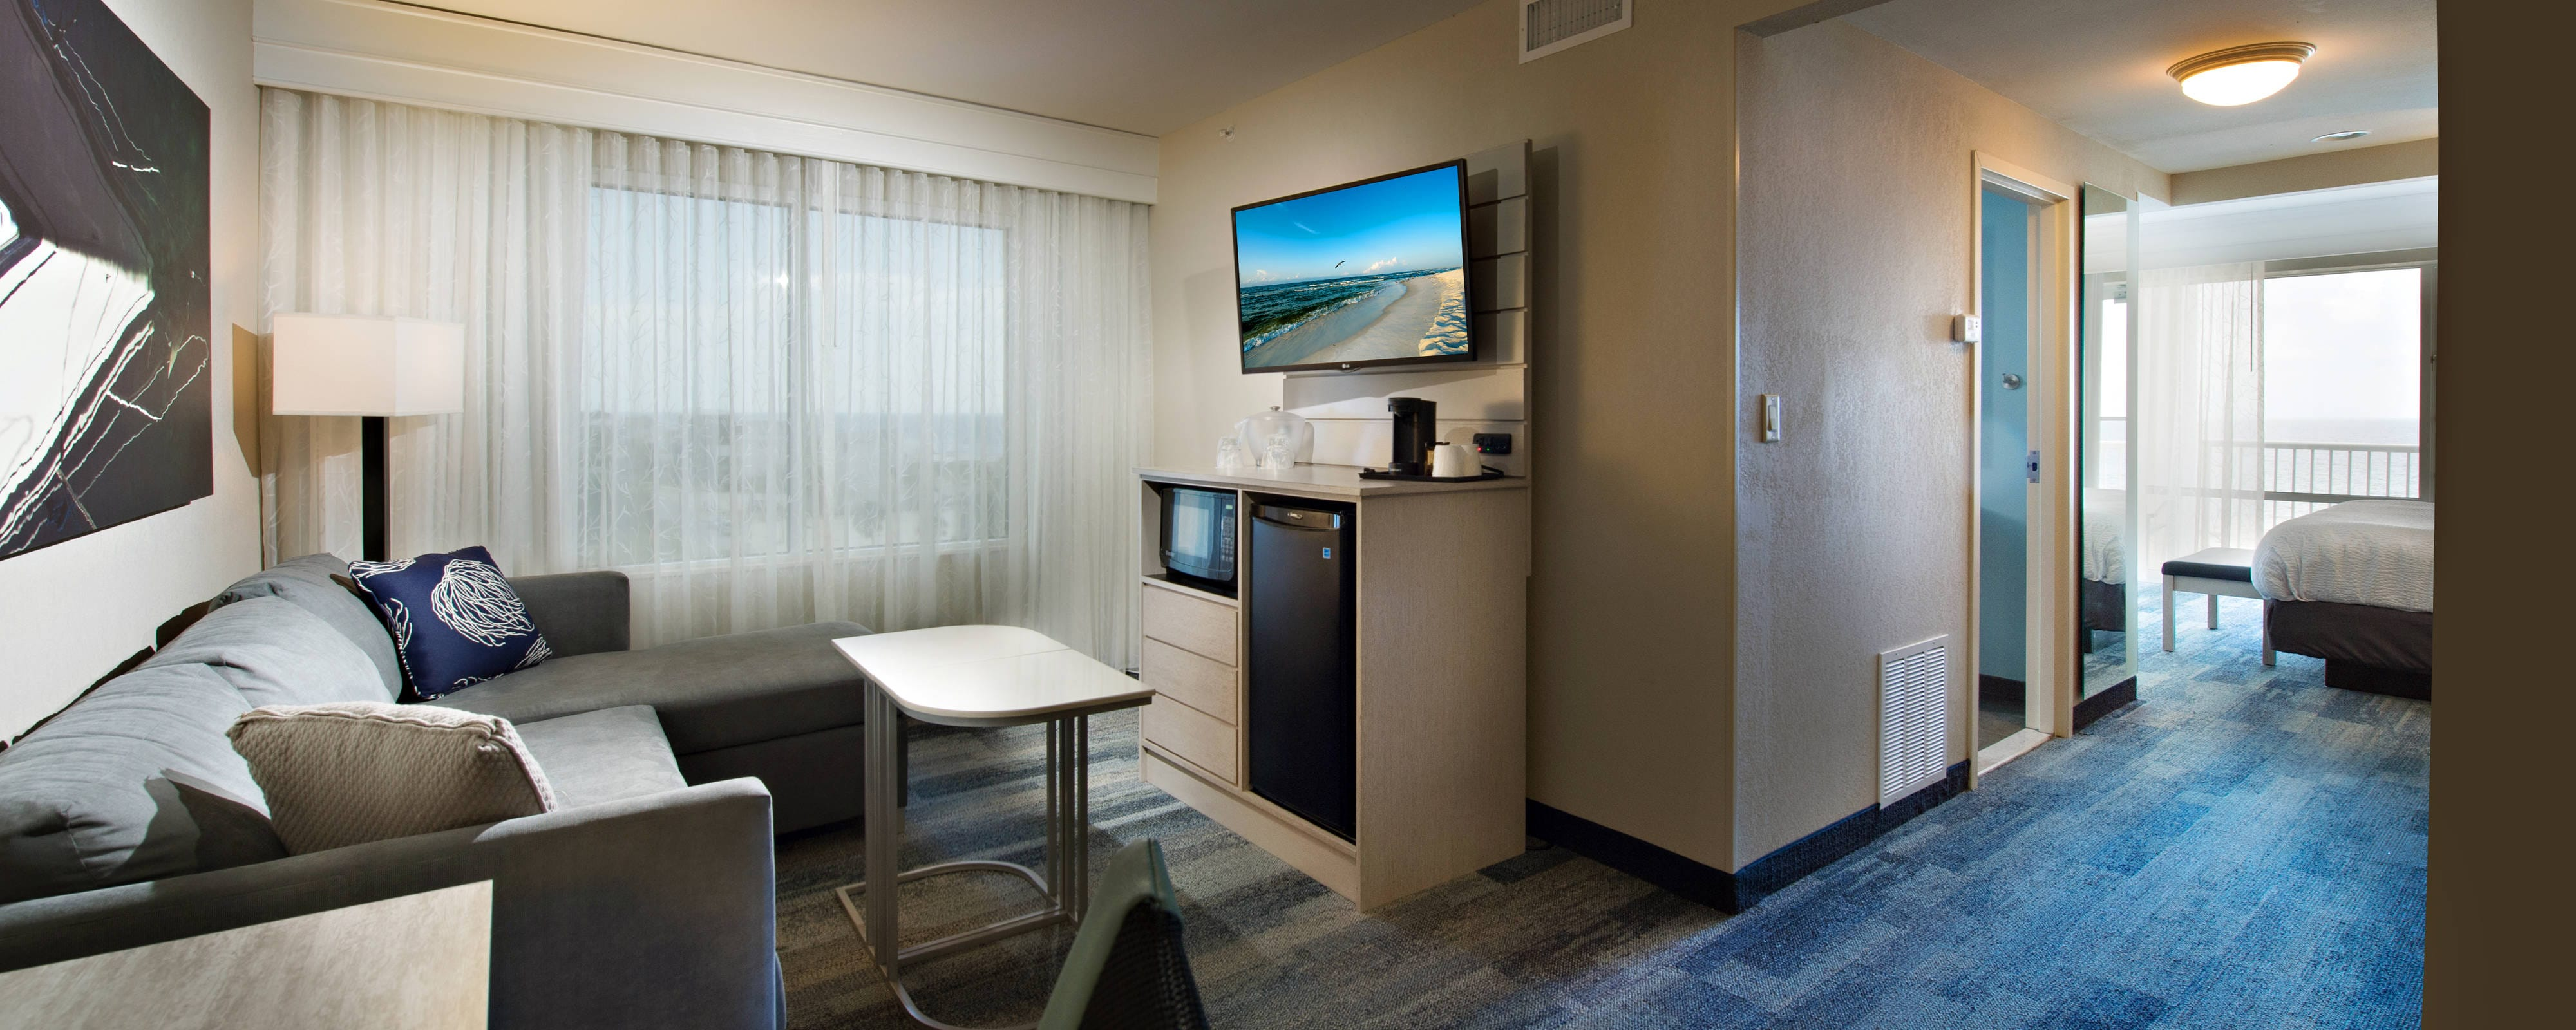 Hotelsuite in Pensacola Beach